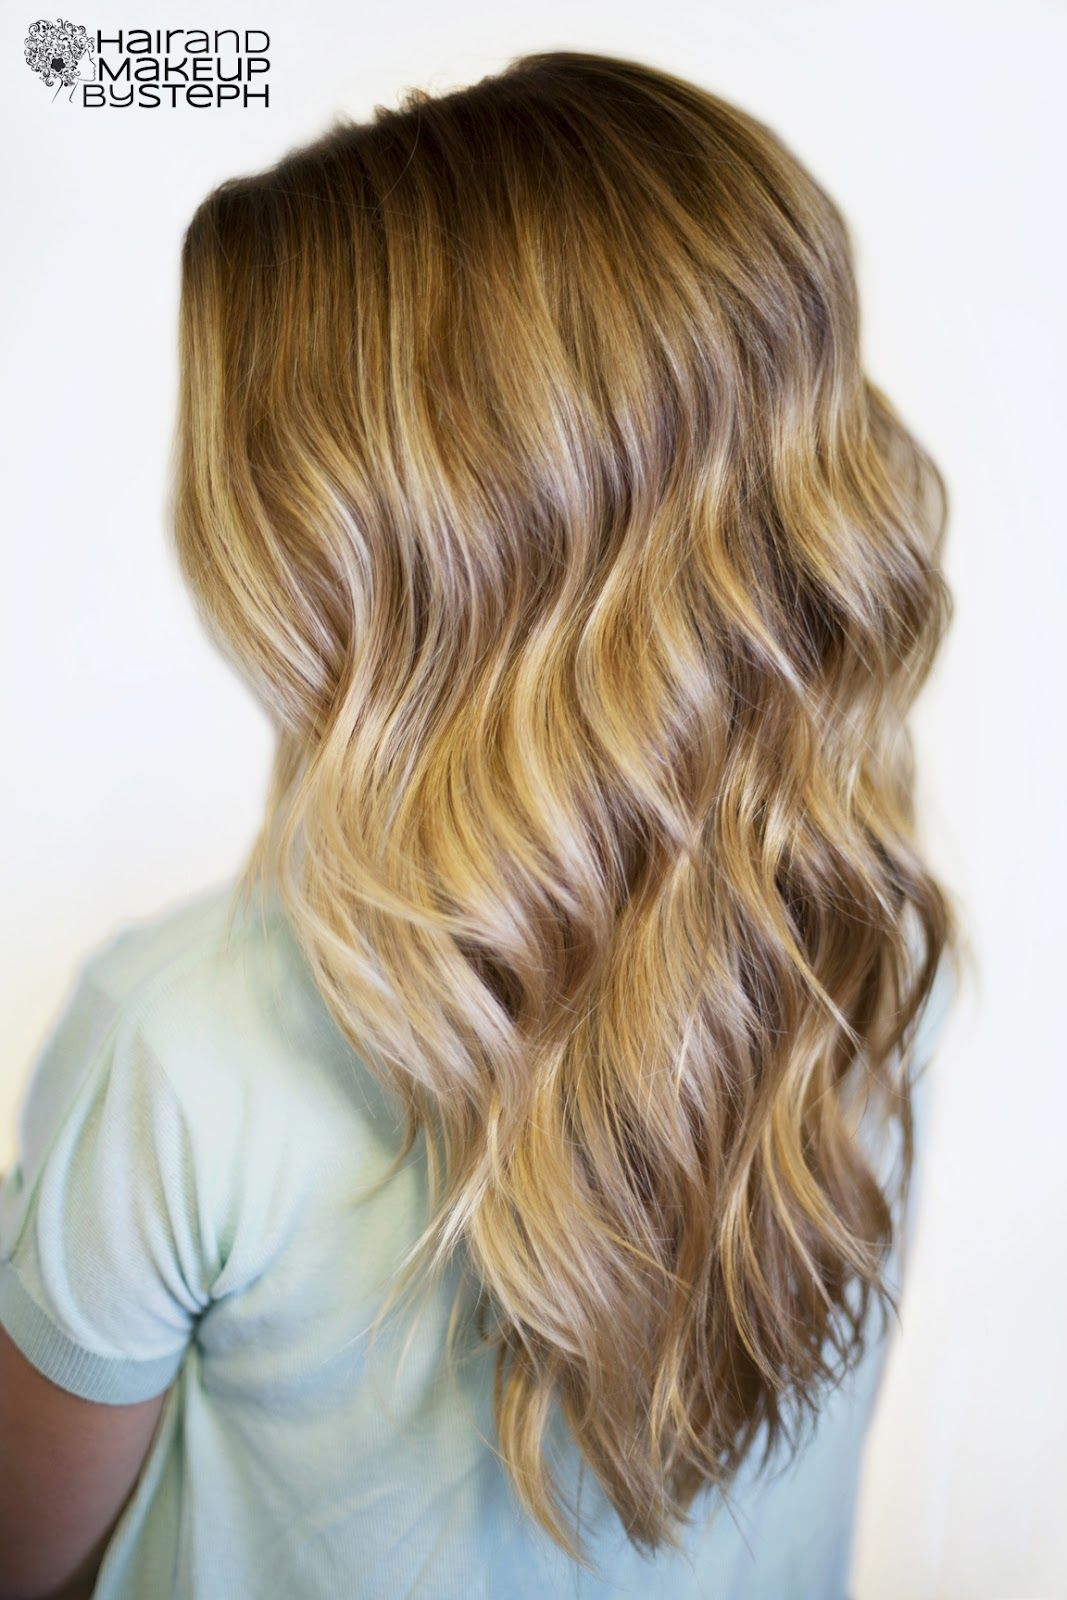 Curling Wand Giveaway   Pretty hairstyles, Hair styles, Hair beauty